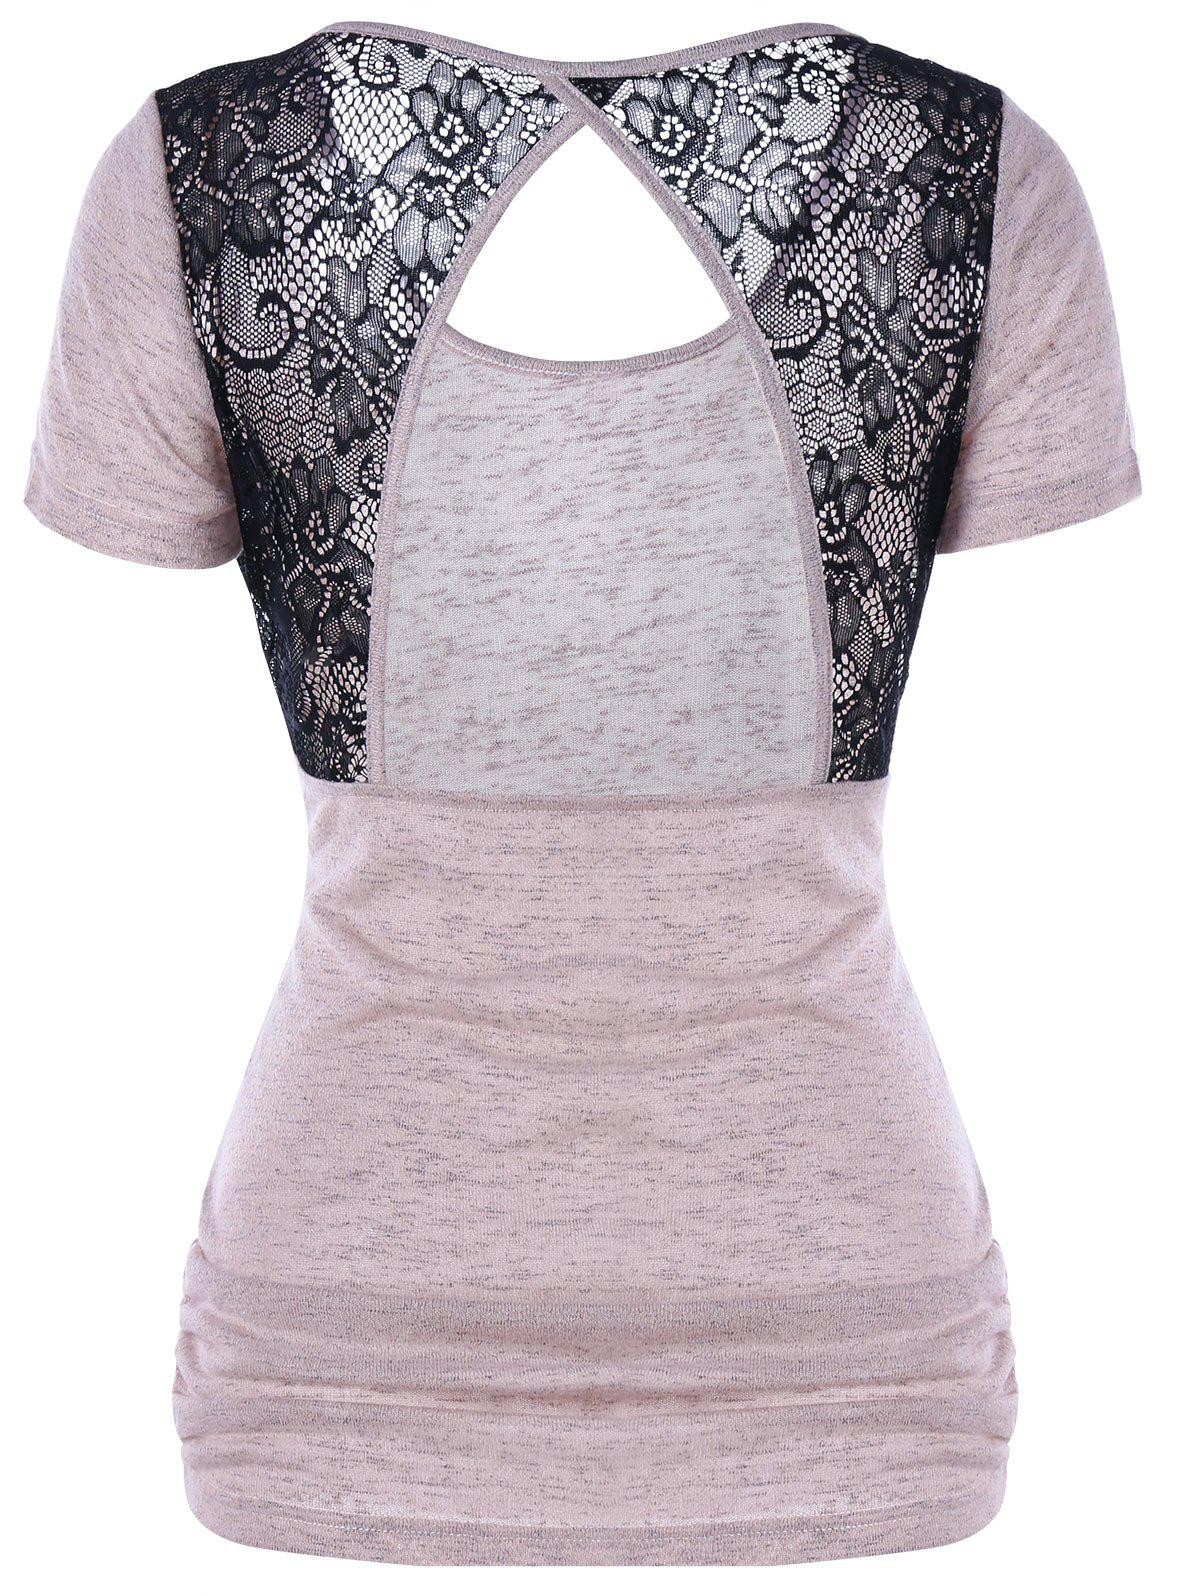 SHALLOW PINK XL Lace Trim Open Back T-Shirt